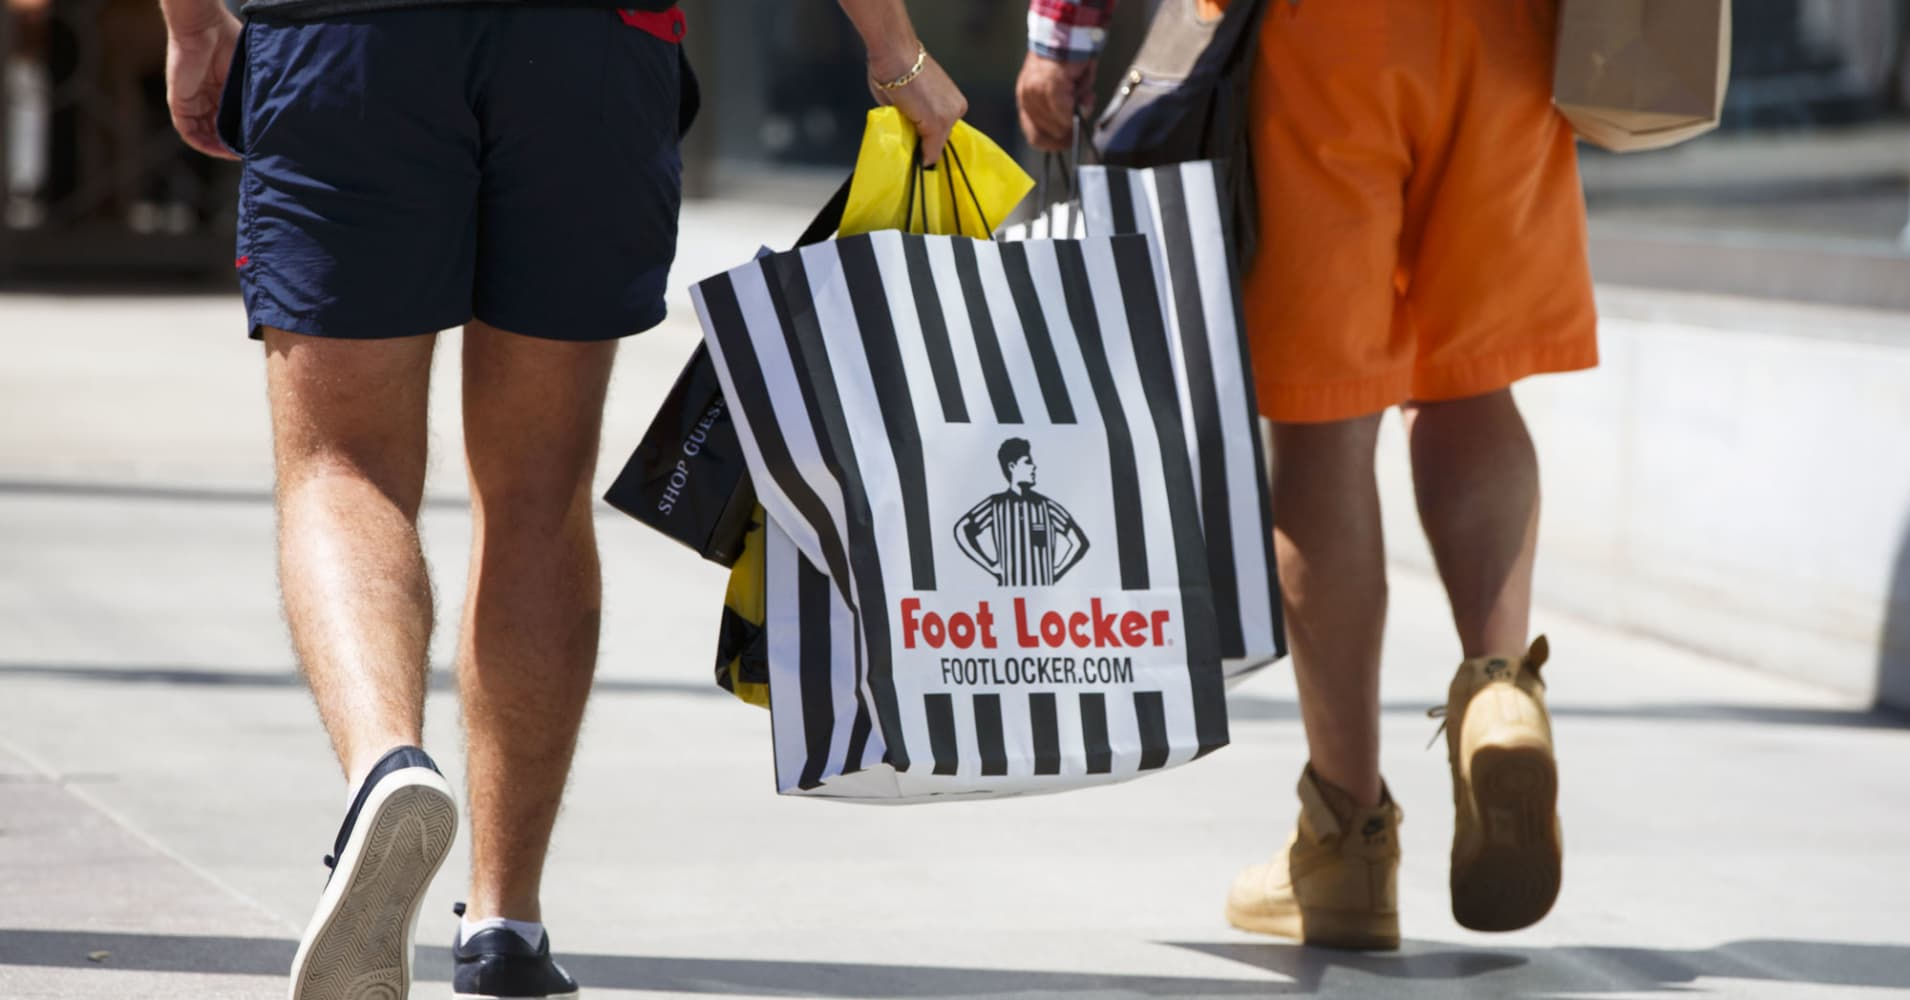 Foot Locker gains digital expertise with $100 million investment in Goat Group, start-up CEO says